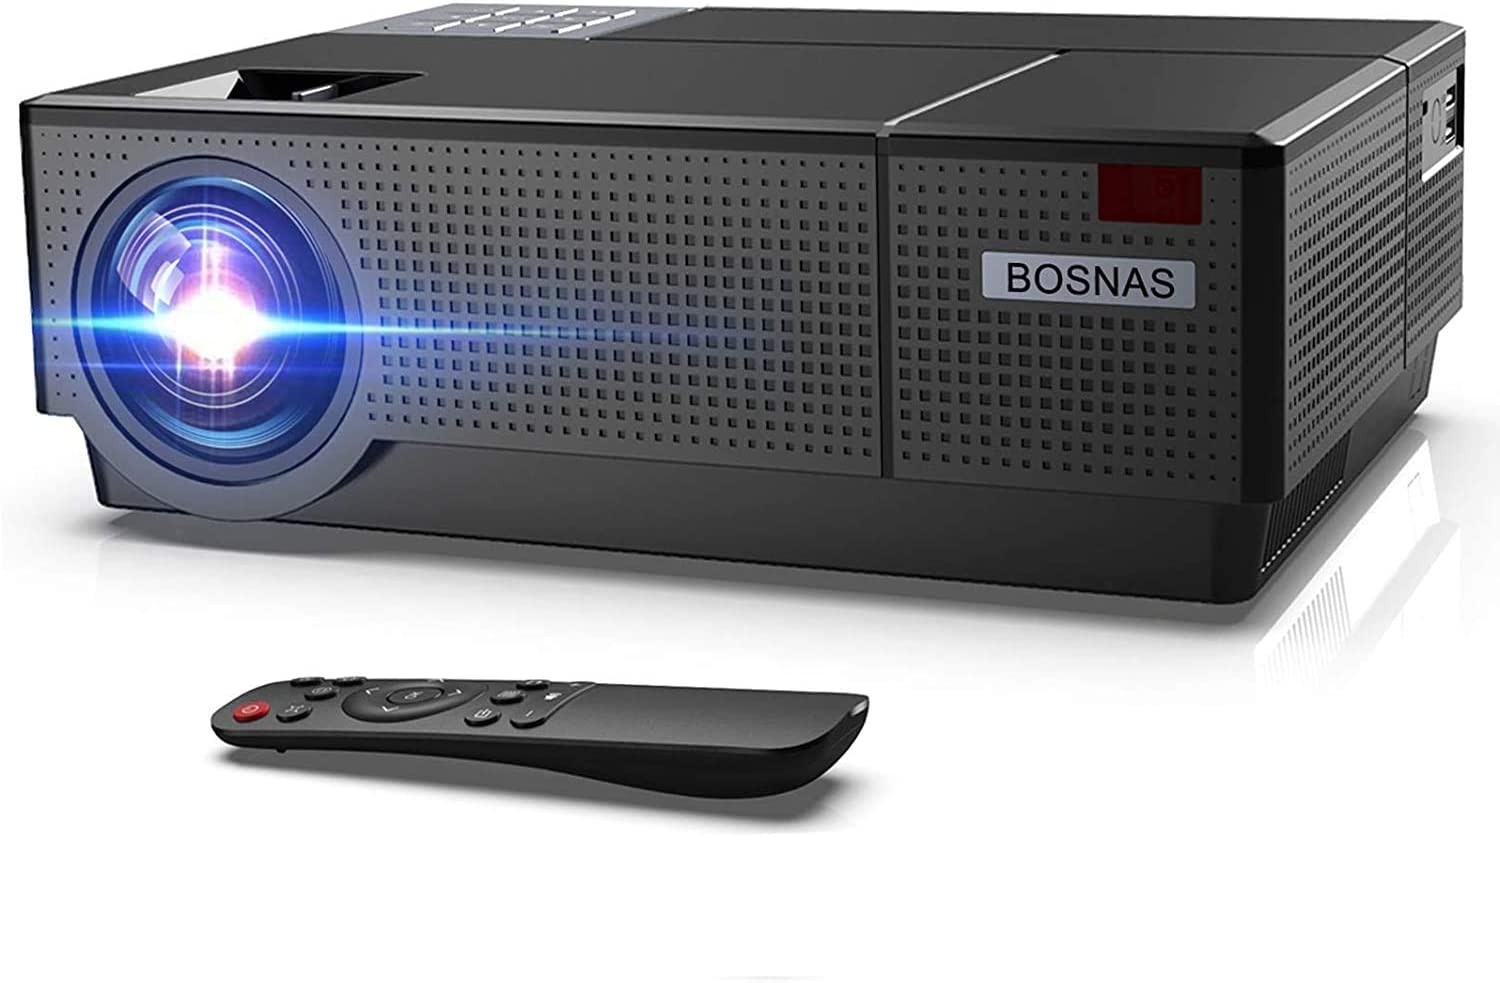 BOSNAS Native 1080P Projector Video 7000 Lux LED Projector 300'' Movie Display Adjustable ±50° 4D Keystone Correction Support 4k for Home Theater for TV Stick HDMI VGA USB Laptop iPhone Android